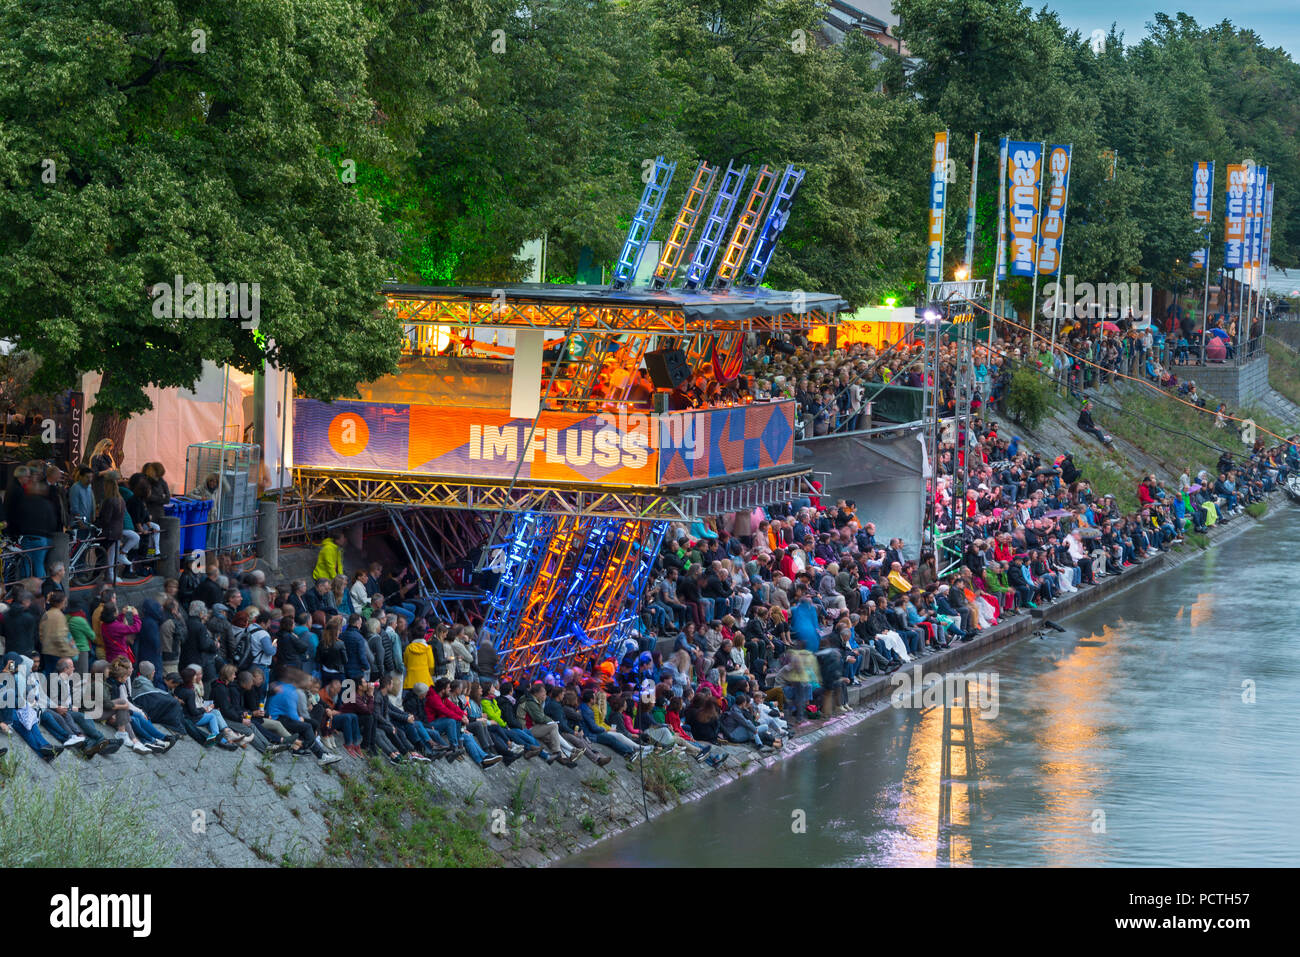 Crowd at the riverbank at the 'Imfluss' Open Air Festival on the banks of River Rhine, Kleinbasel, Basel-Stadt, Canton of Basel-Stadt, Switzerland - Stock Image